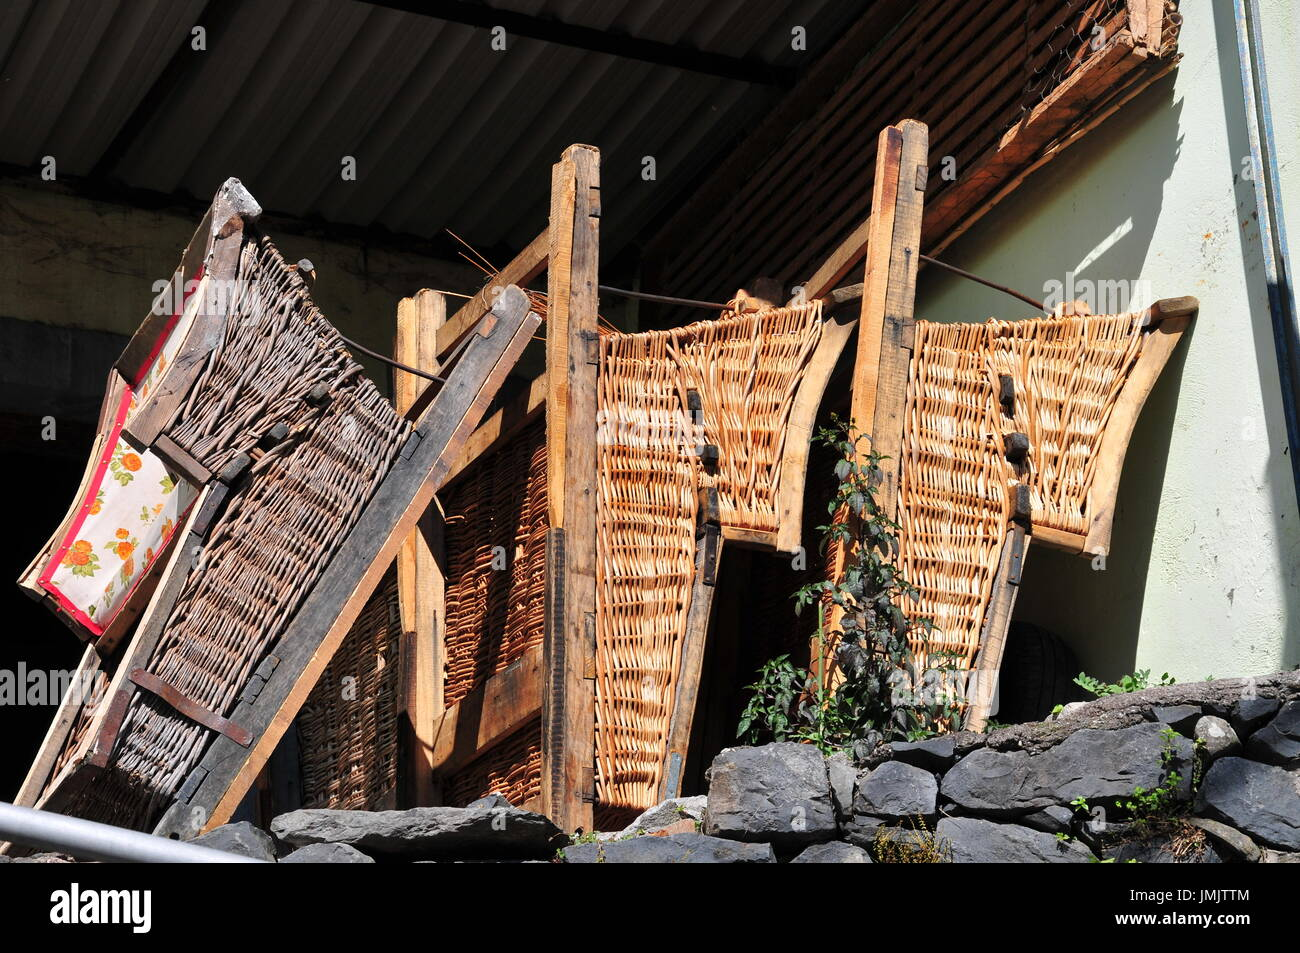 Wooden/wicker toboggans used in the tourist industry in Madeira to take people down the hill on the roadways, steered by two operators - Stock Image